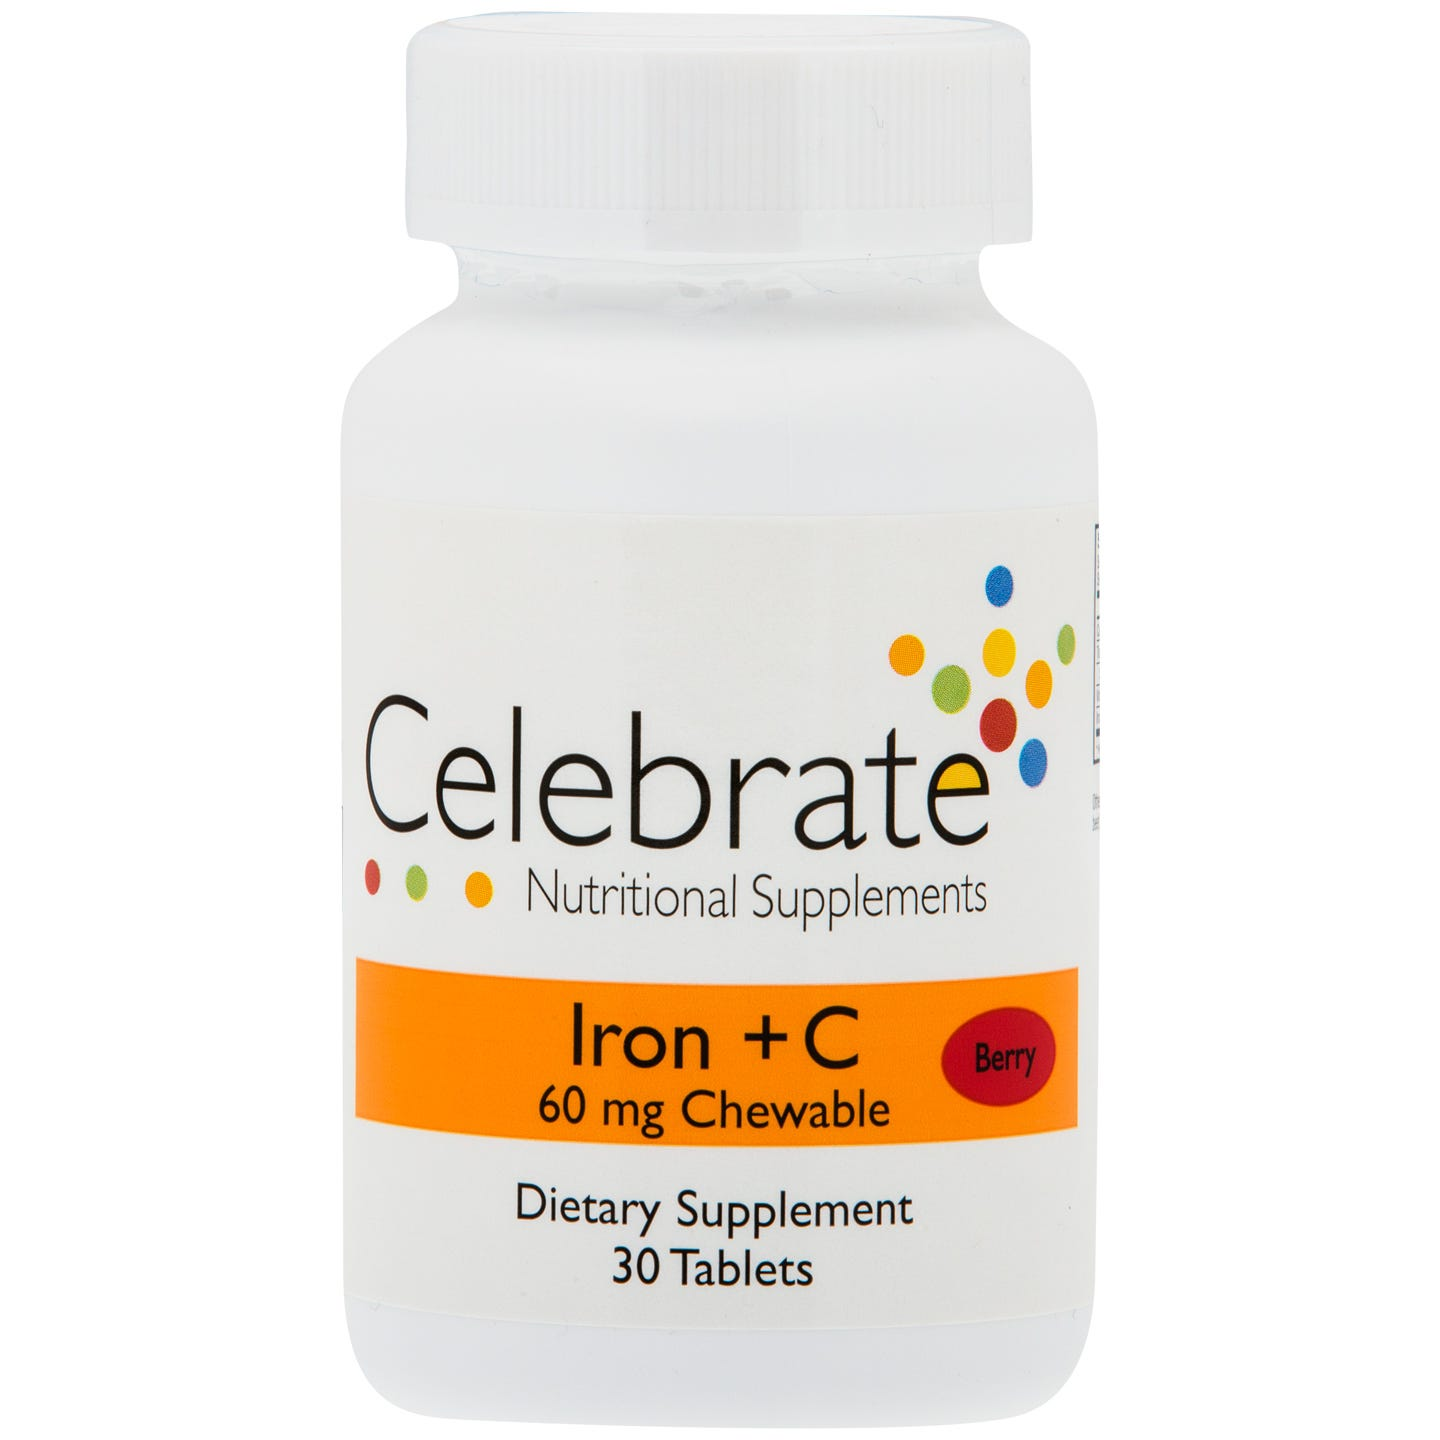 Iron+C 60 mg Chewable Berry (30 ct) - Celebrate - Rapid Diet Weight Loss Products Shop